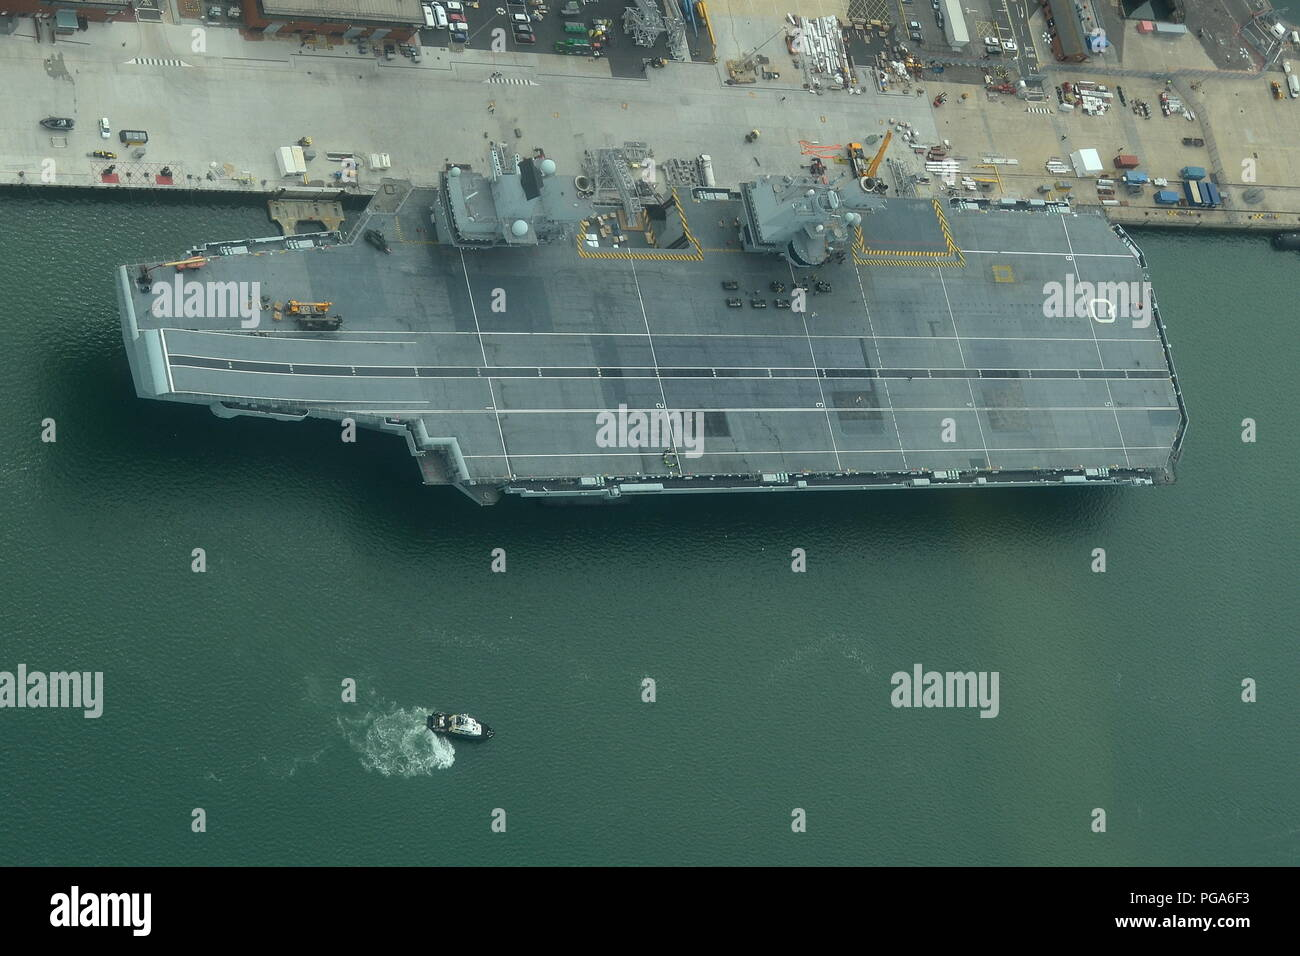 ROYAL NAVY NEW AIRCRAFT CARRIER HMS QUEEN ELIZABETH - Stock Image